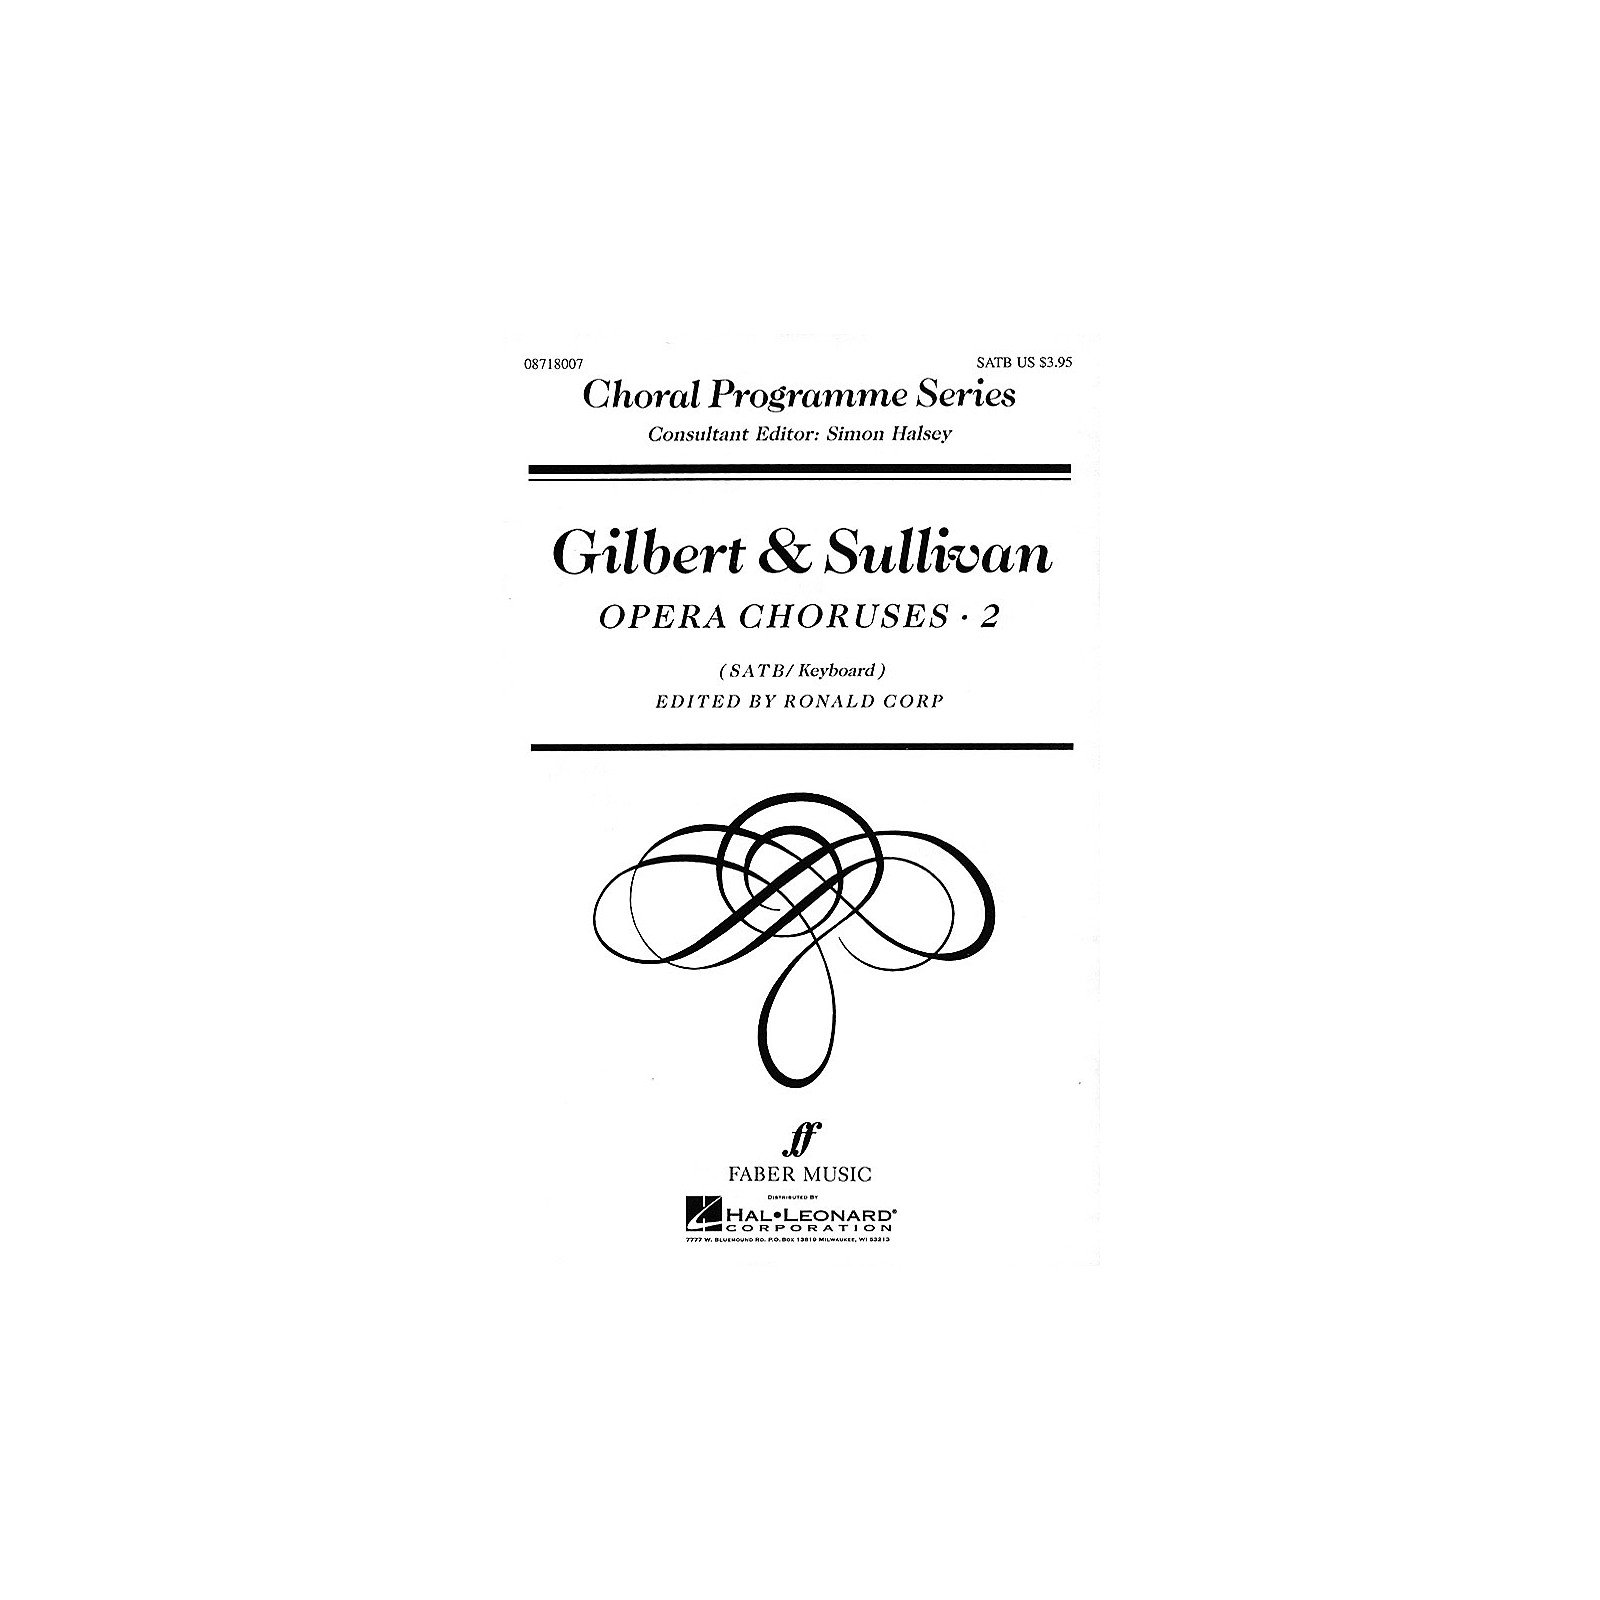 Faber Music LTD Gilbert & Sullivan Opera Choruses, Vol 2 Faber Program Series by Gilbert & Sullivan Edited by Ronald Corp